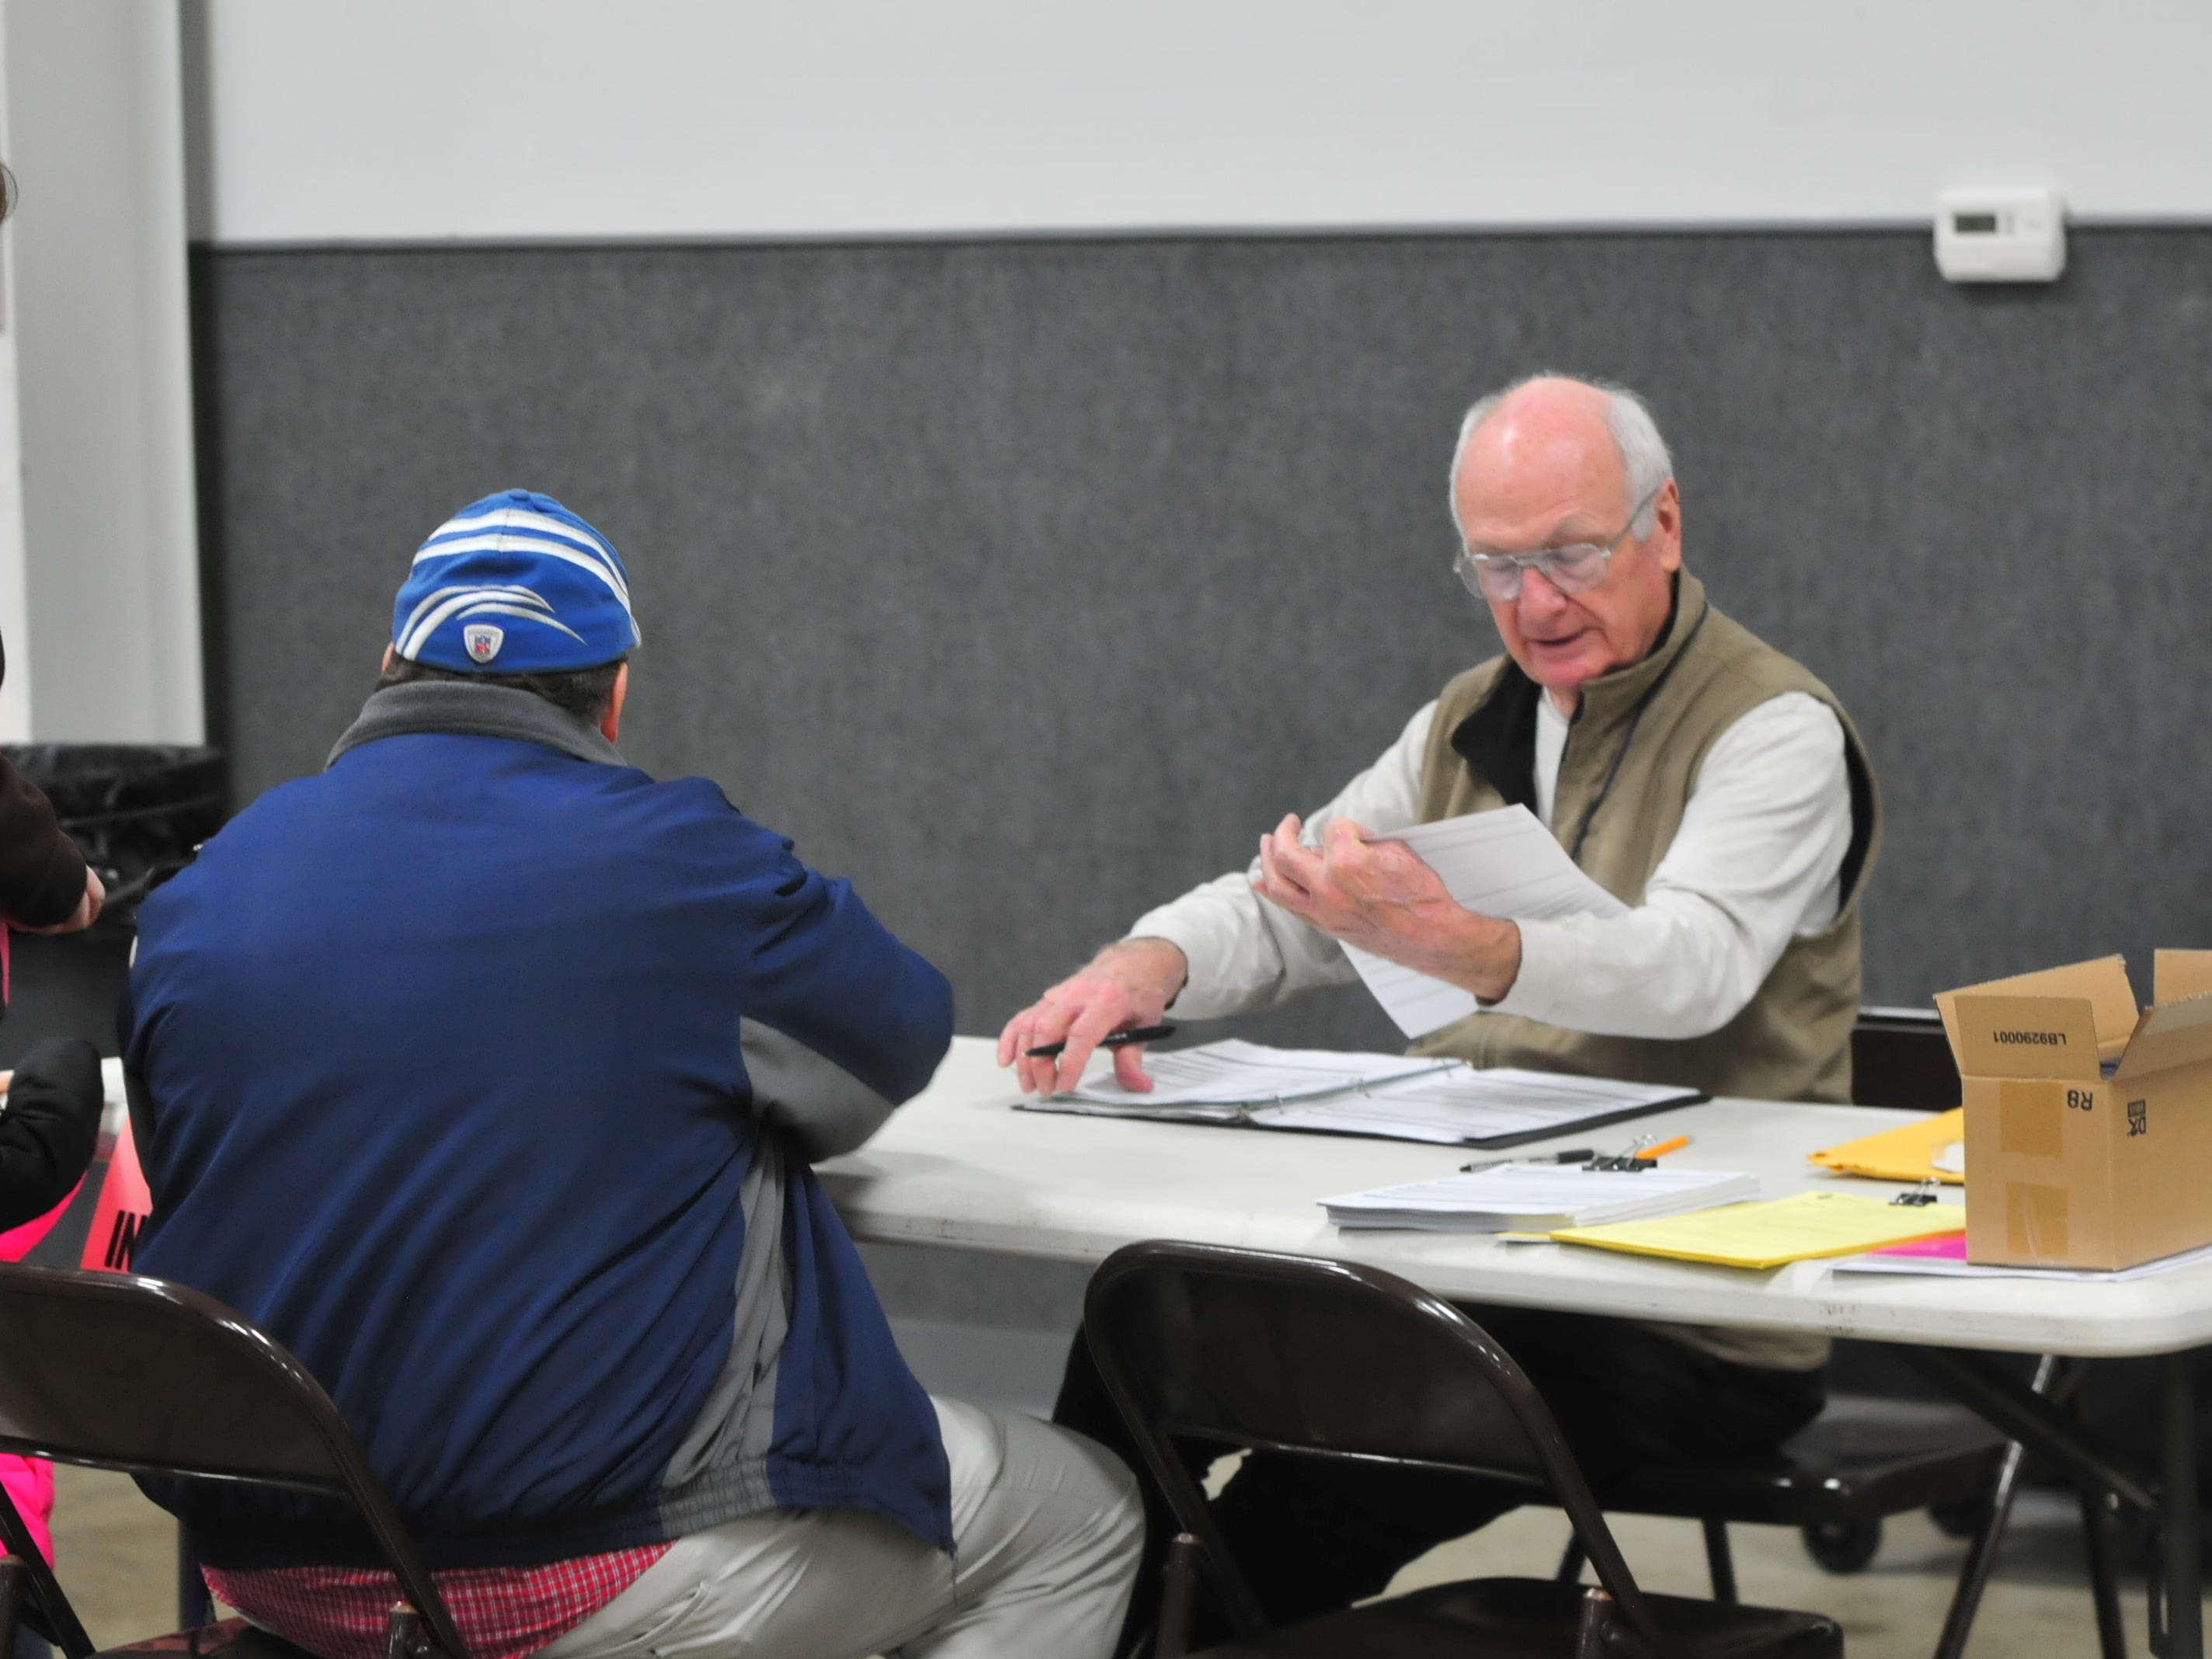 Bill Martus checks some paperwork in his role as inspector for the vote center inside Kuhlman Center.